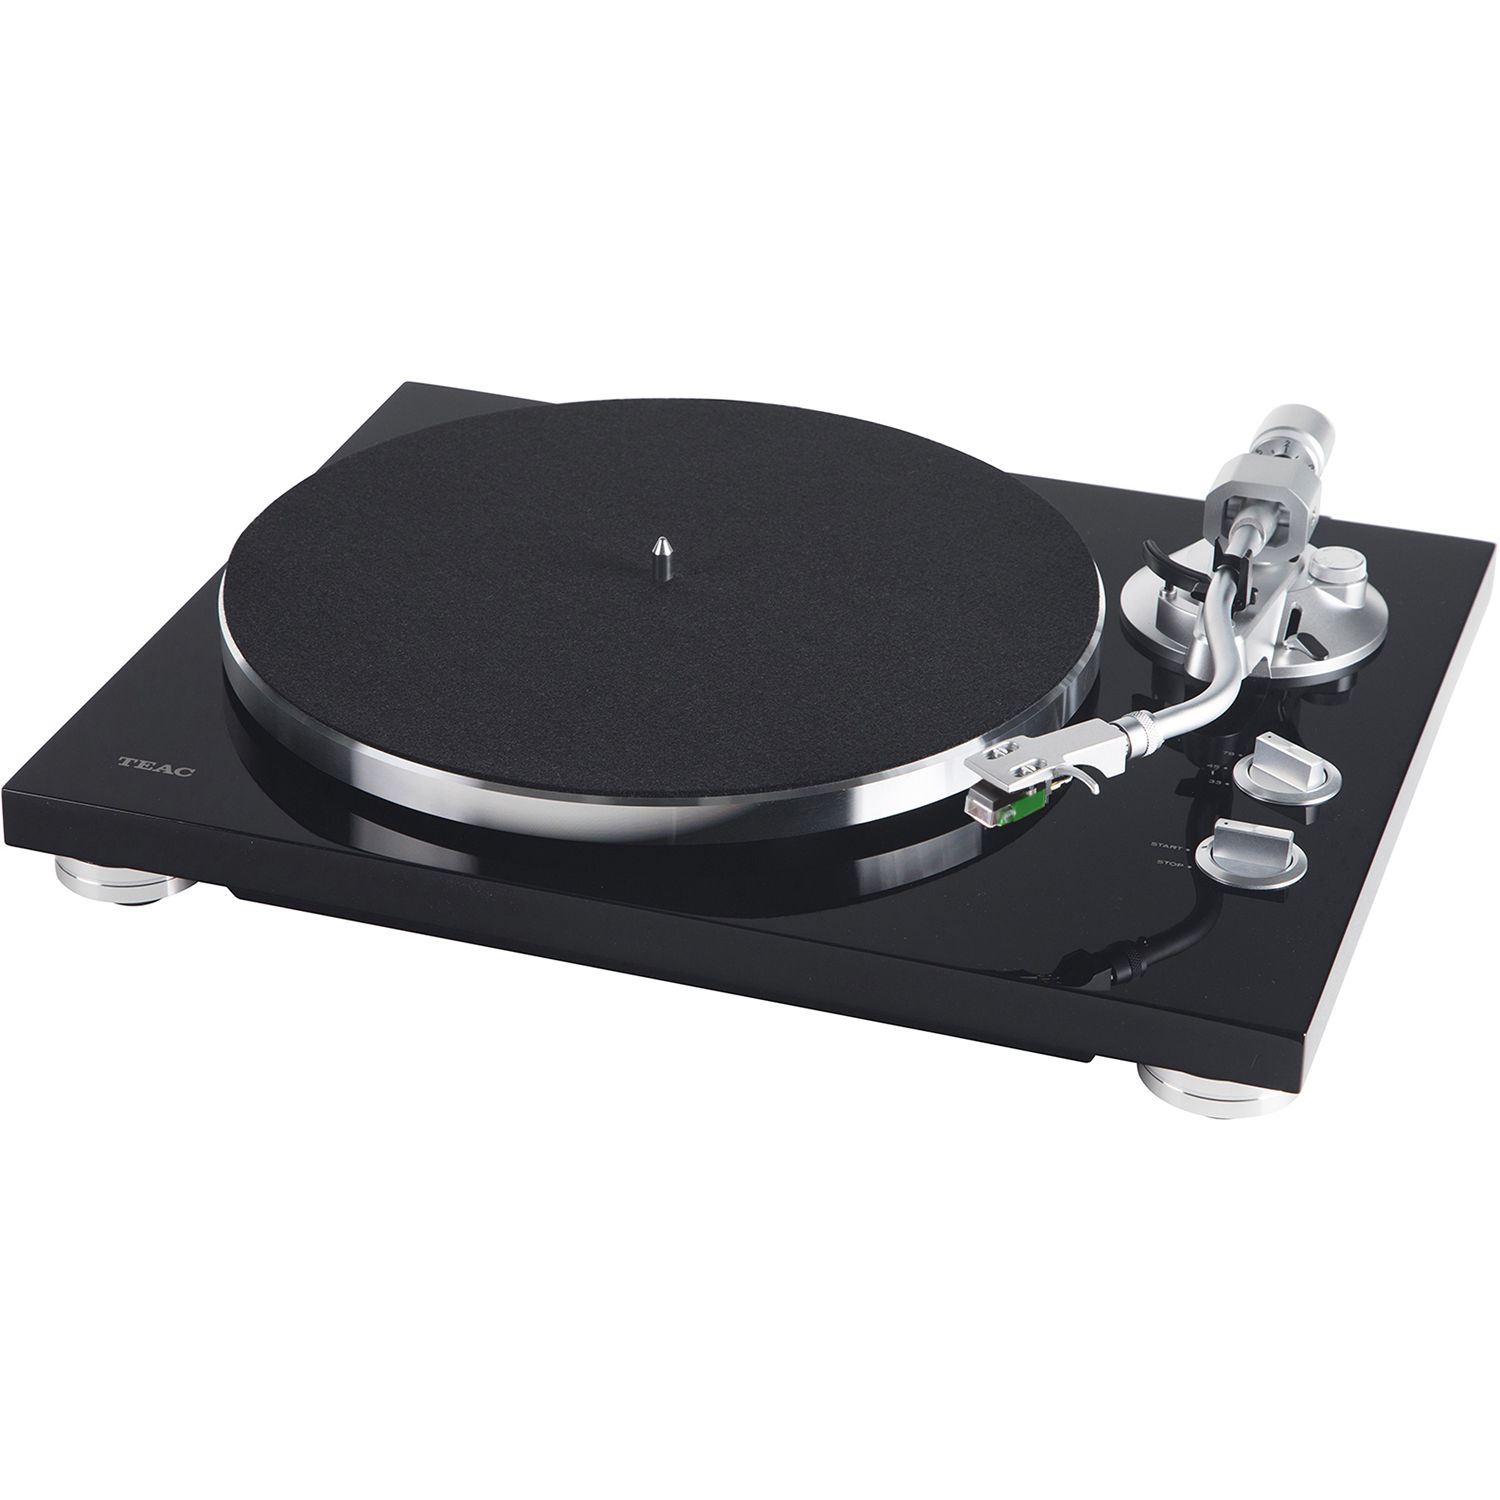 teac tn 400s belt drive turntable with phono amplifier tn 400s b rh bhphotovideo com Electric Wire Color Code USA Electric Wire Color Code USA